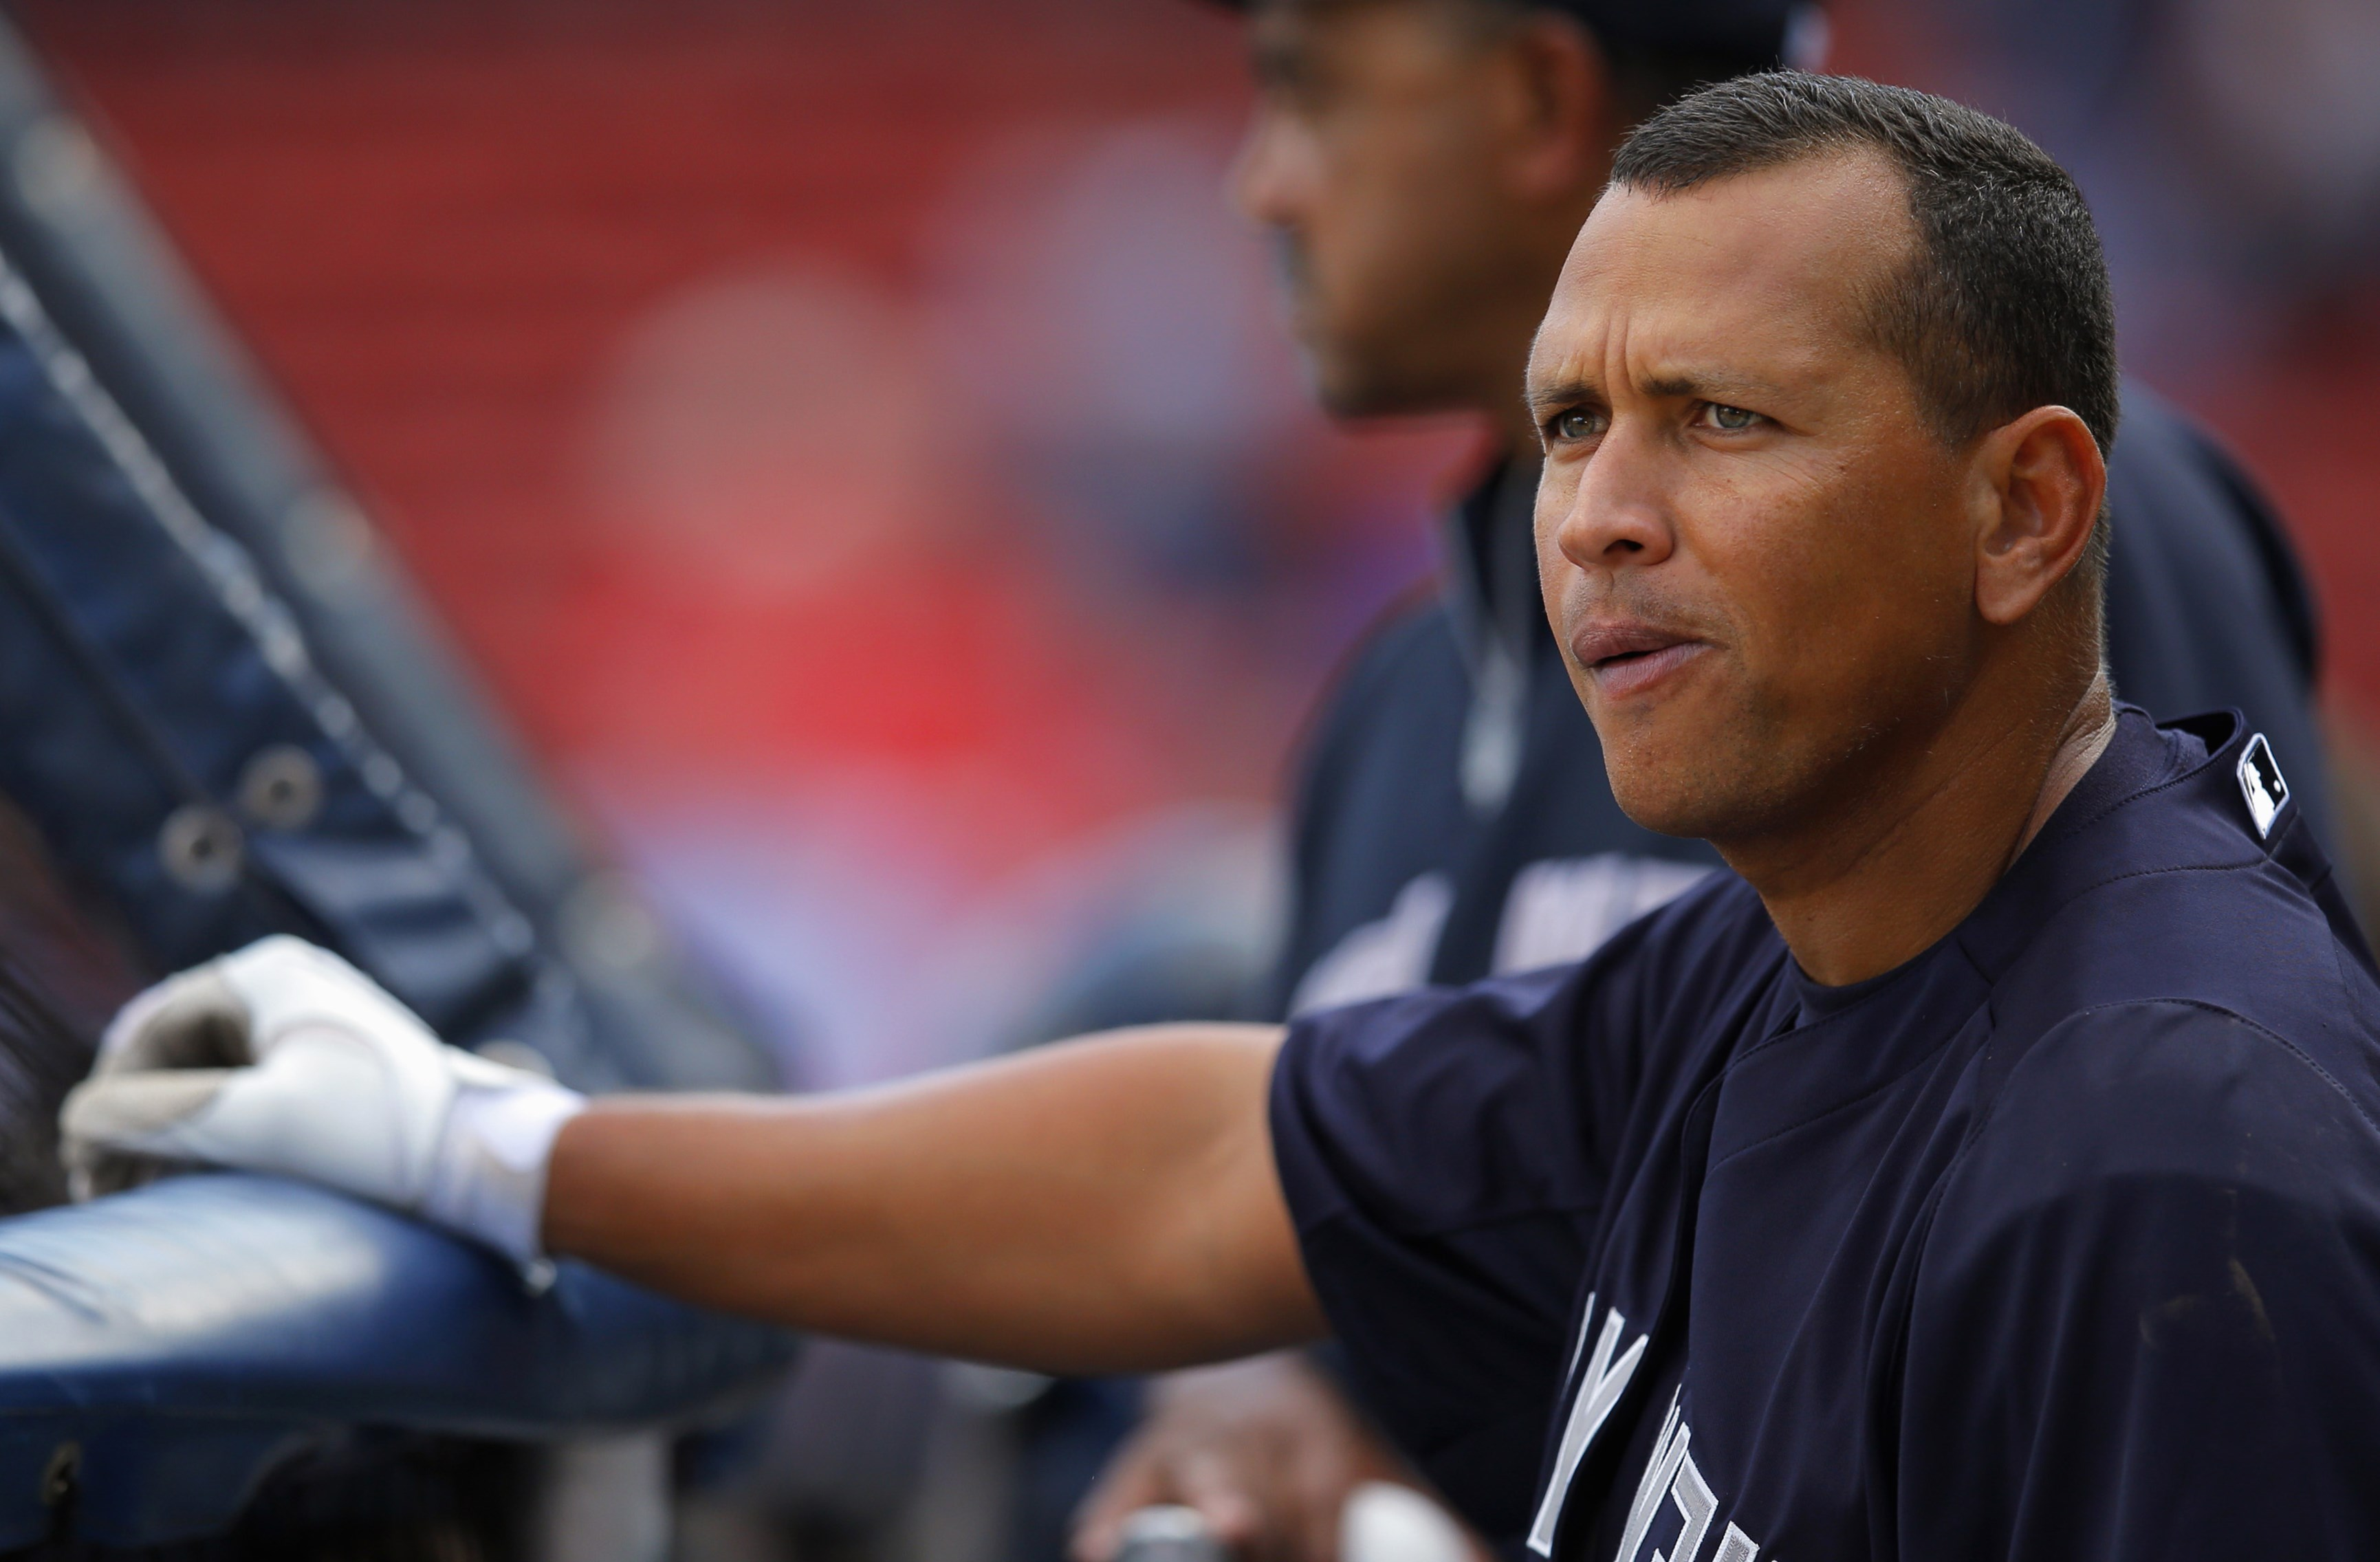 Alex Rodriguez - Height, Weight and Body Measurements